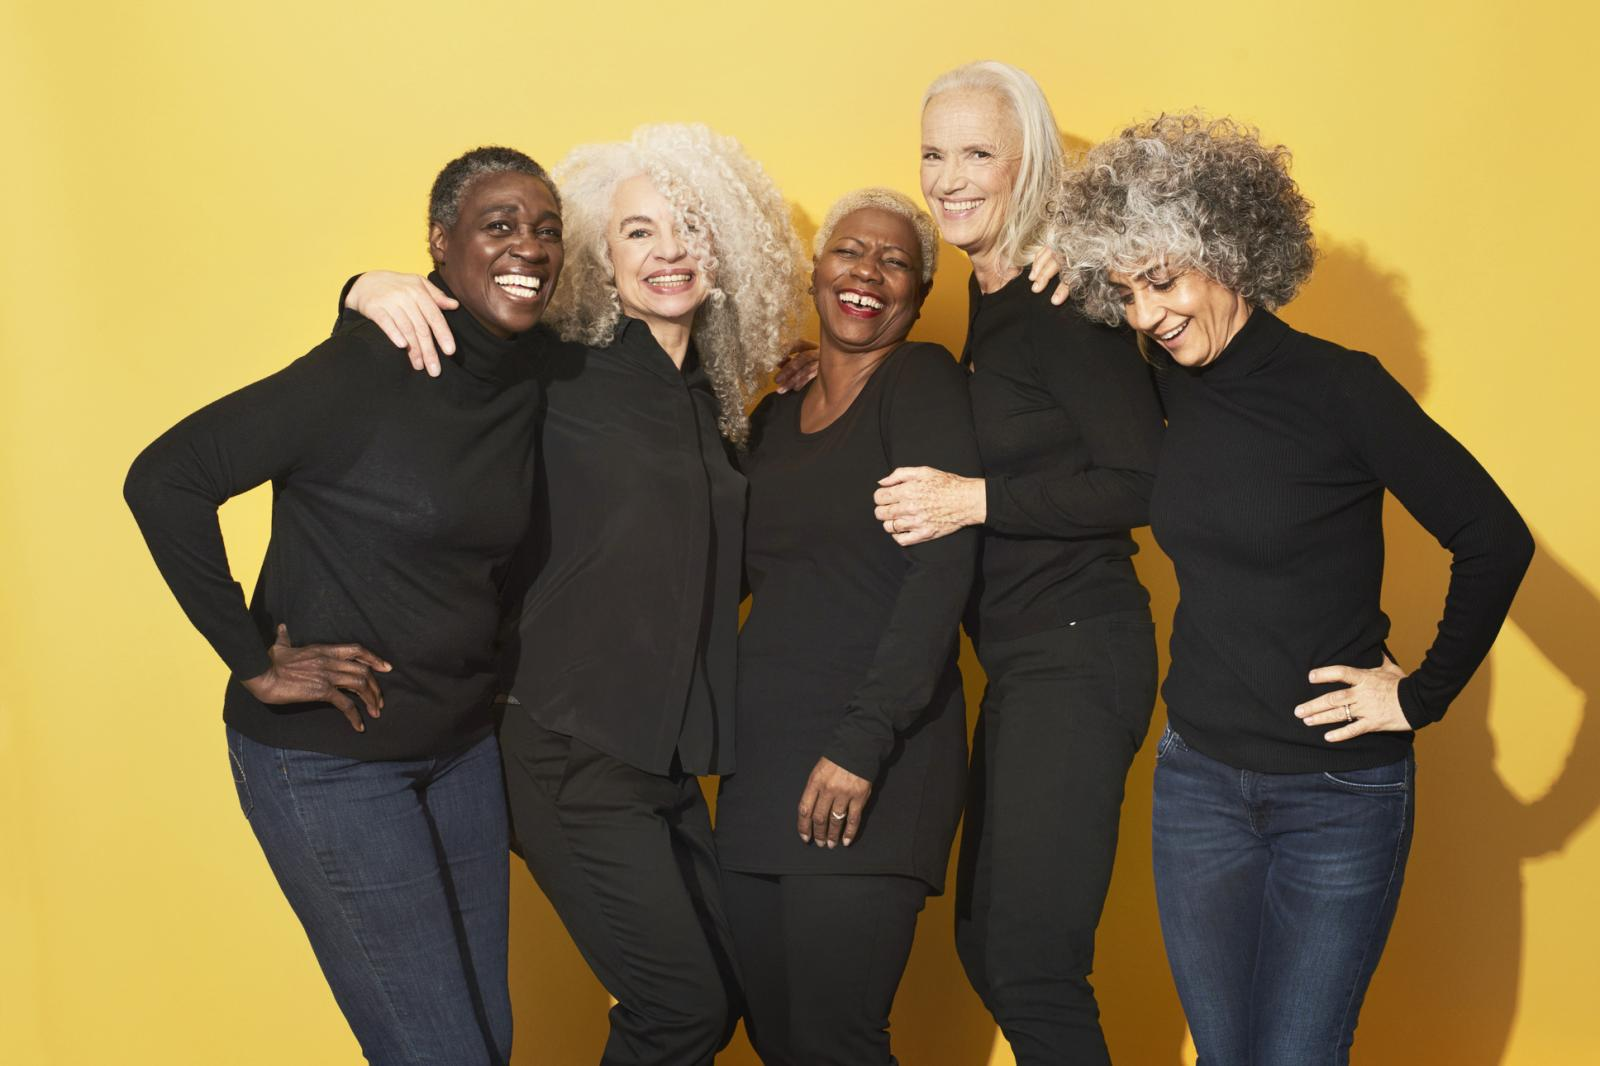 Portrait of five women with gray hair laughing and having fun